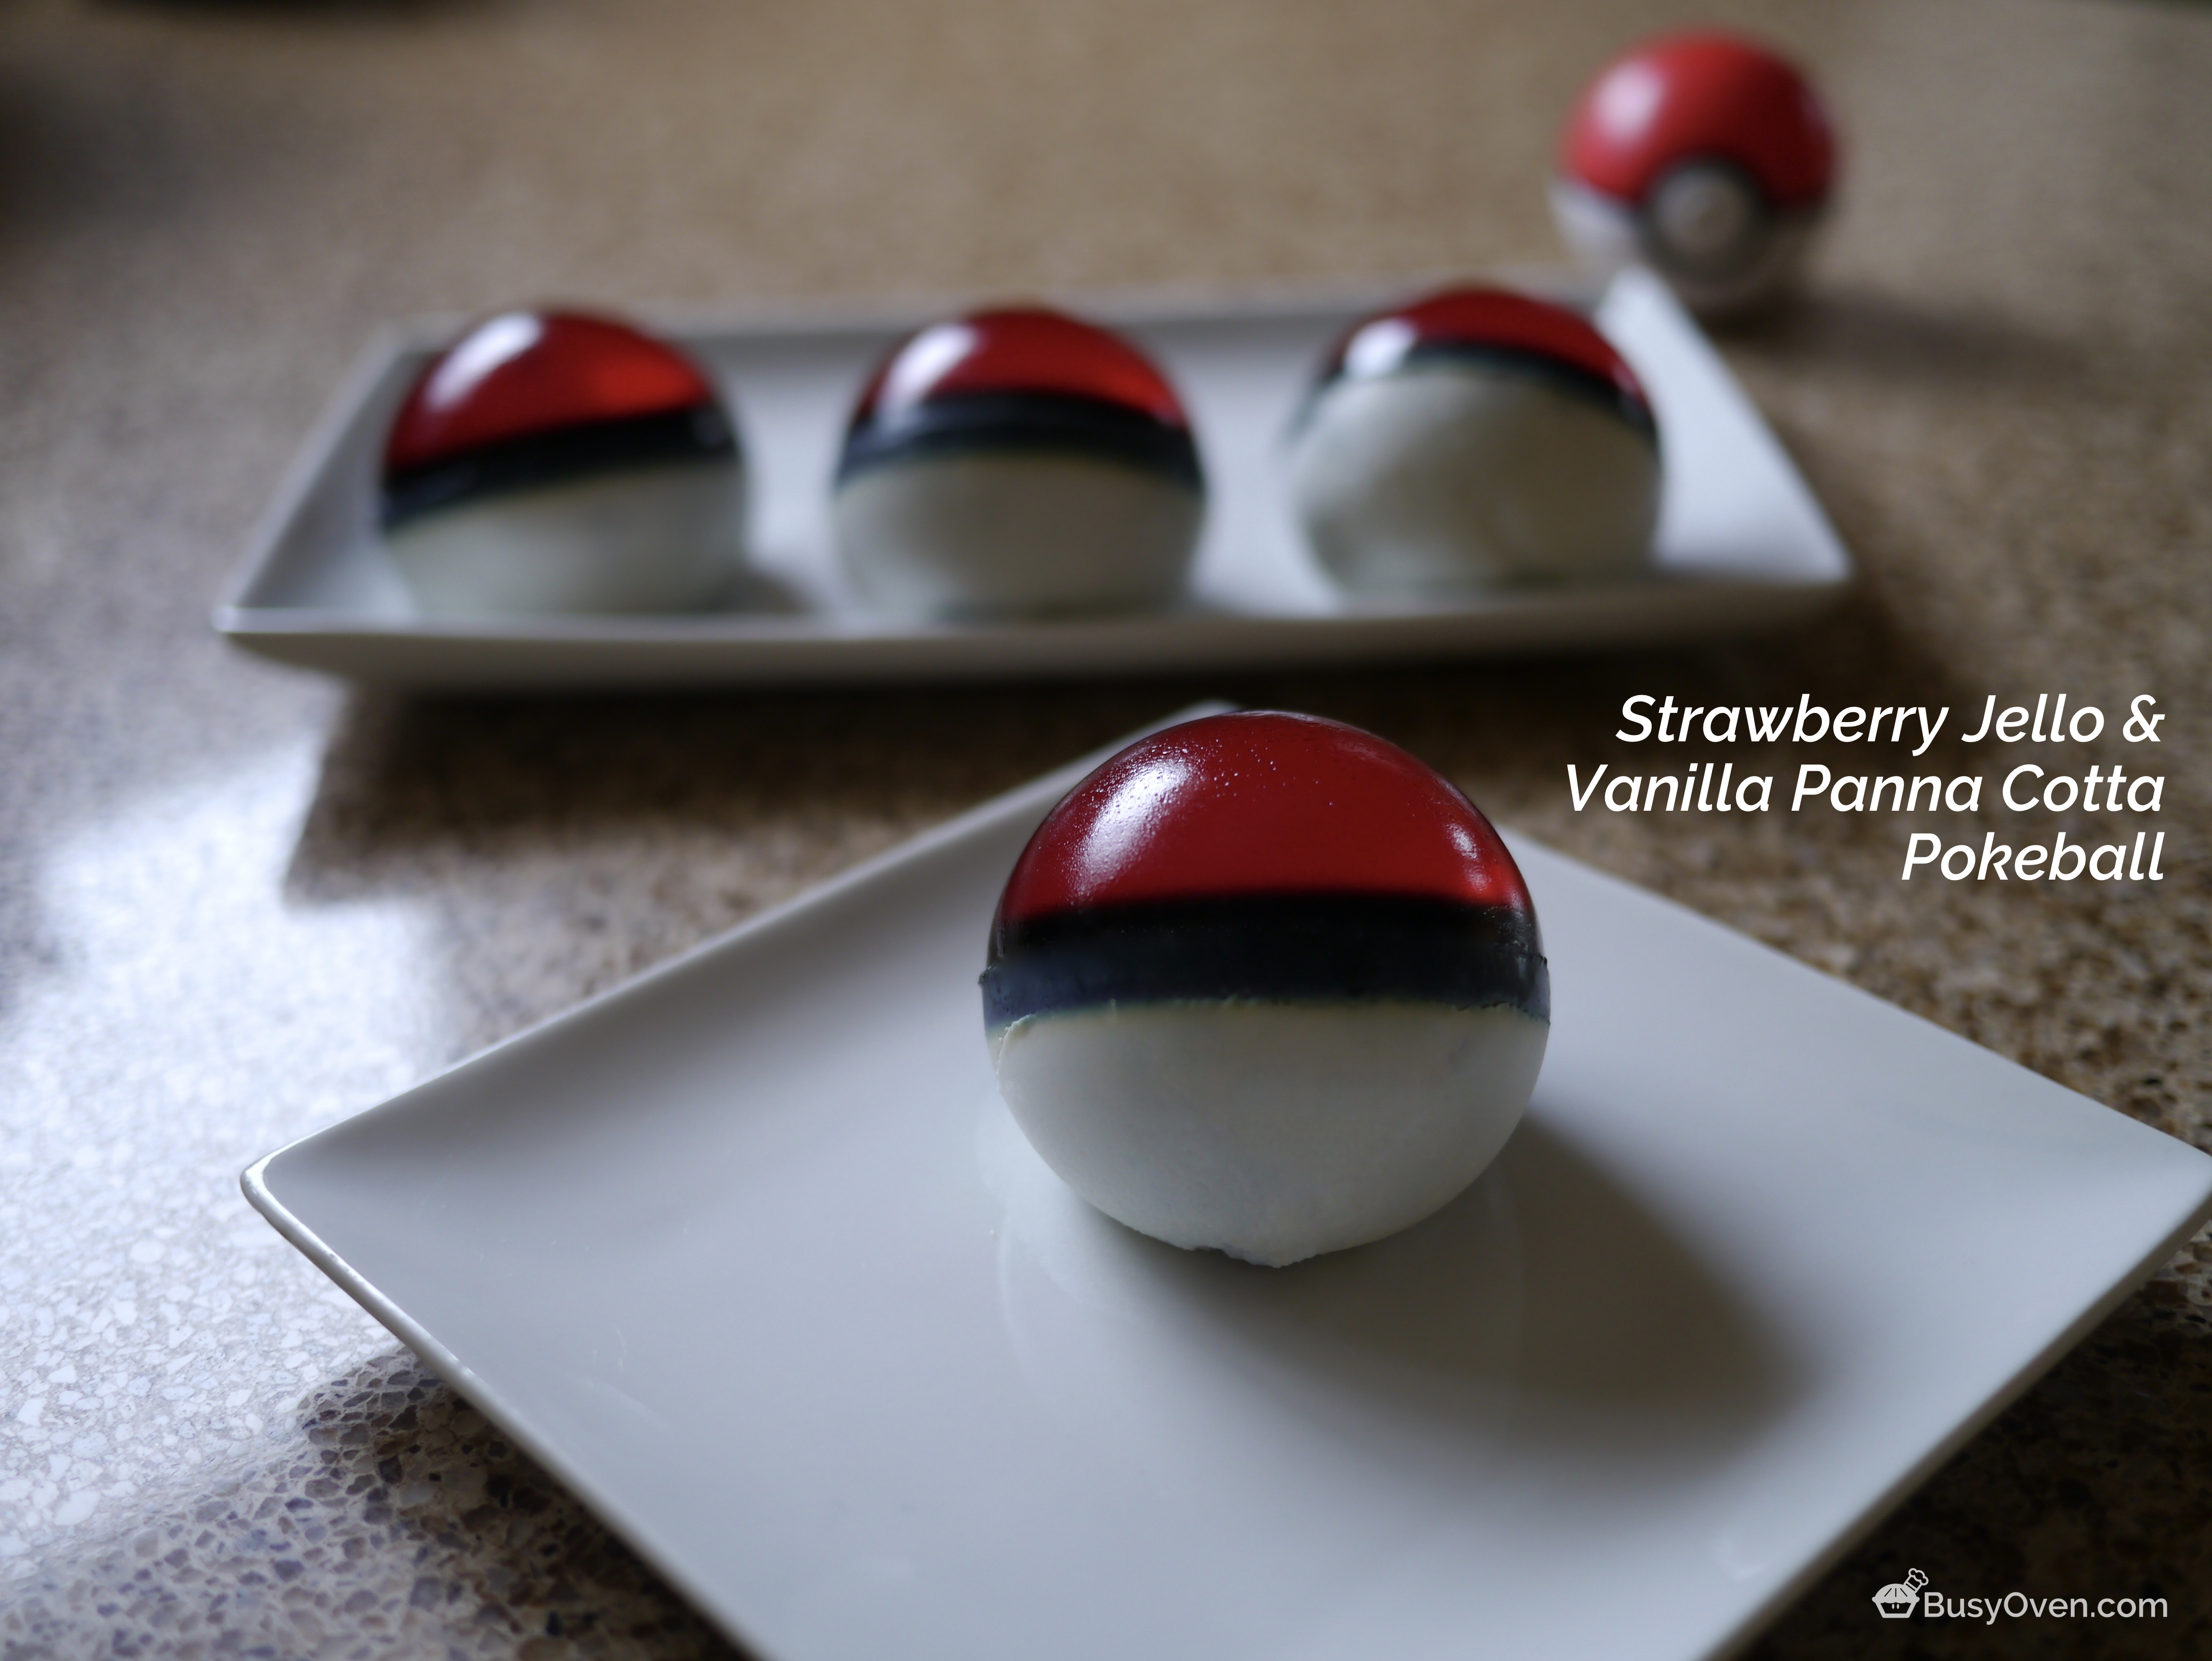 Strawberry Jello and Vanilla Panna Cotta Pokeball